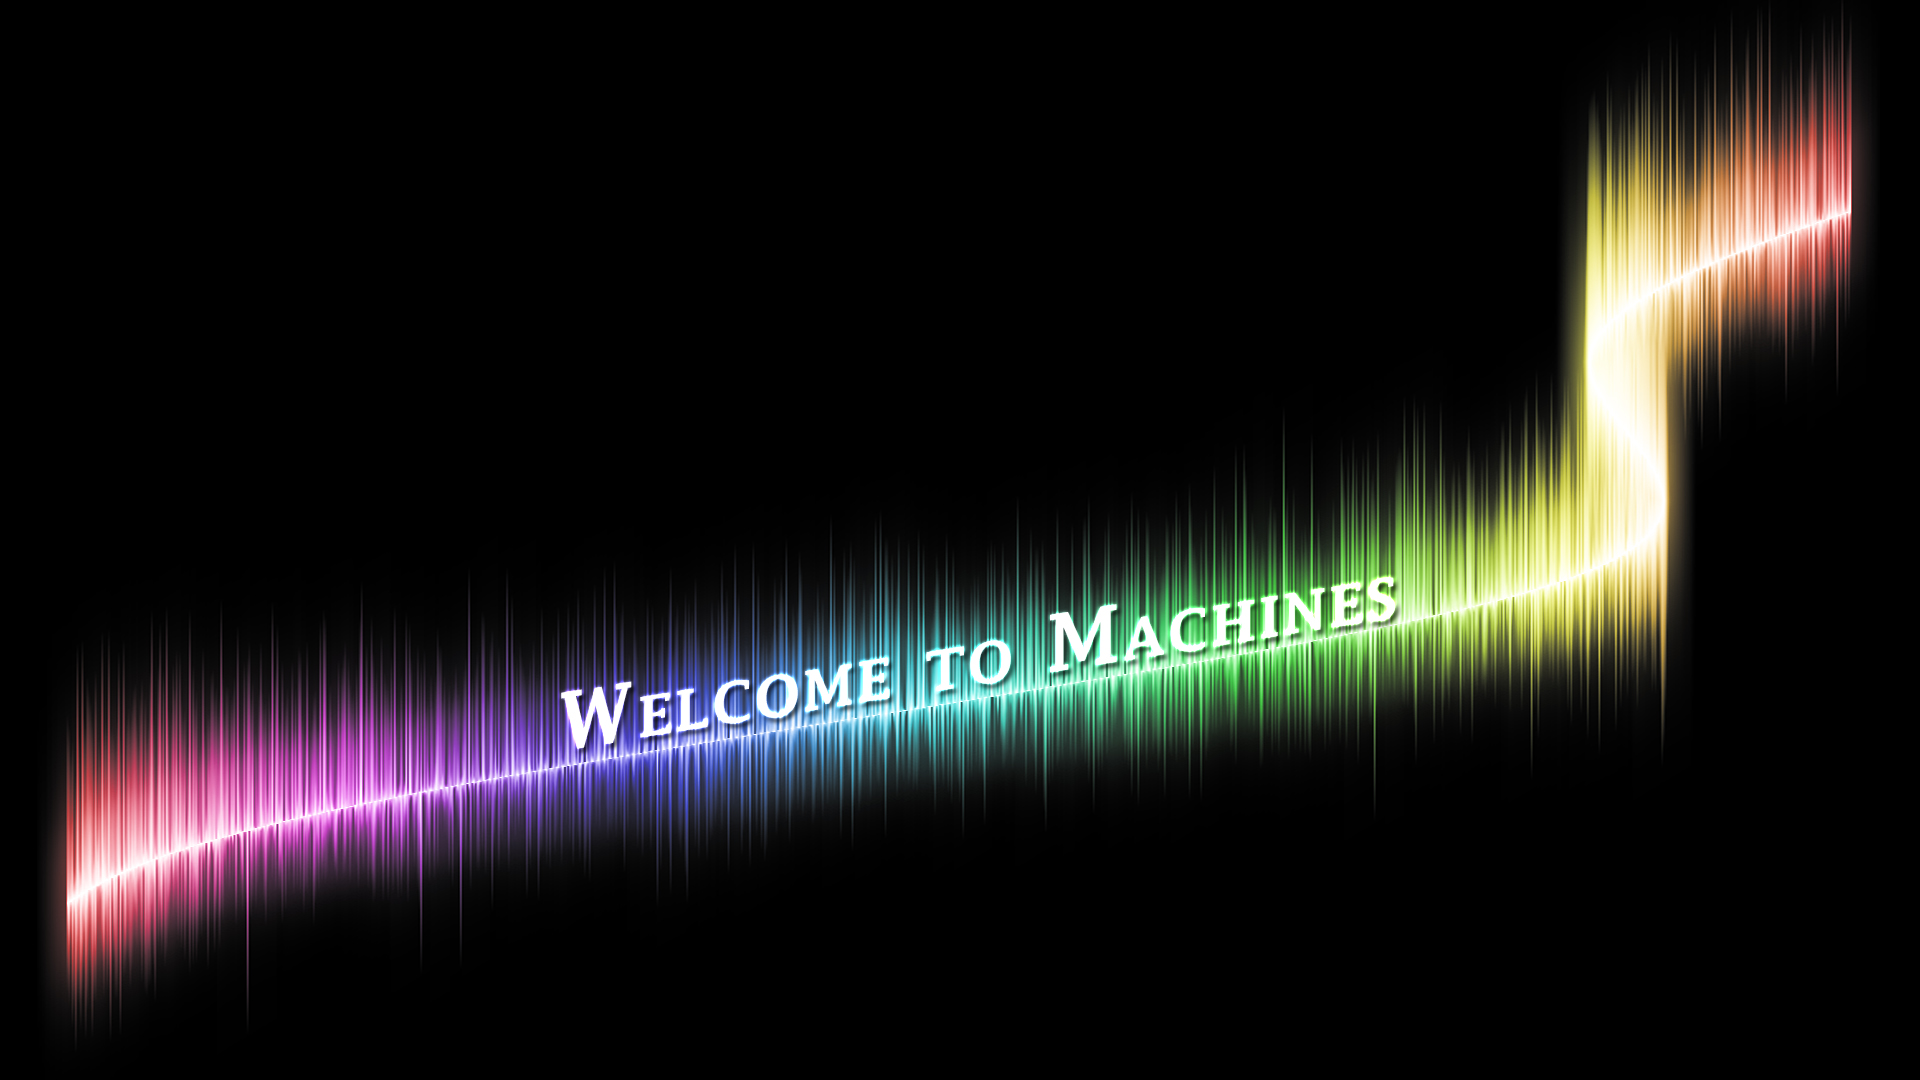 Welcome to Machines -4 by ritwik-mango